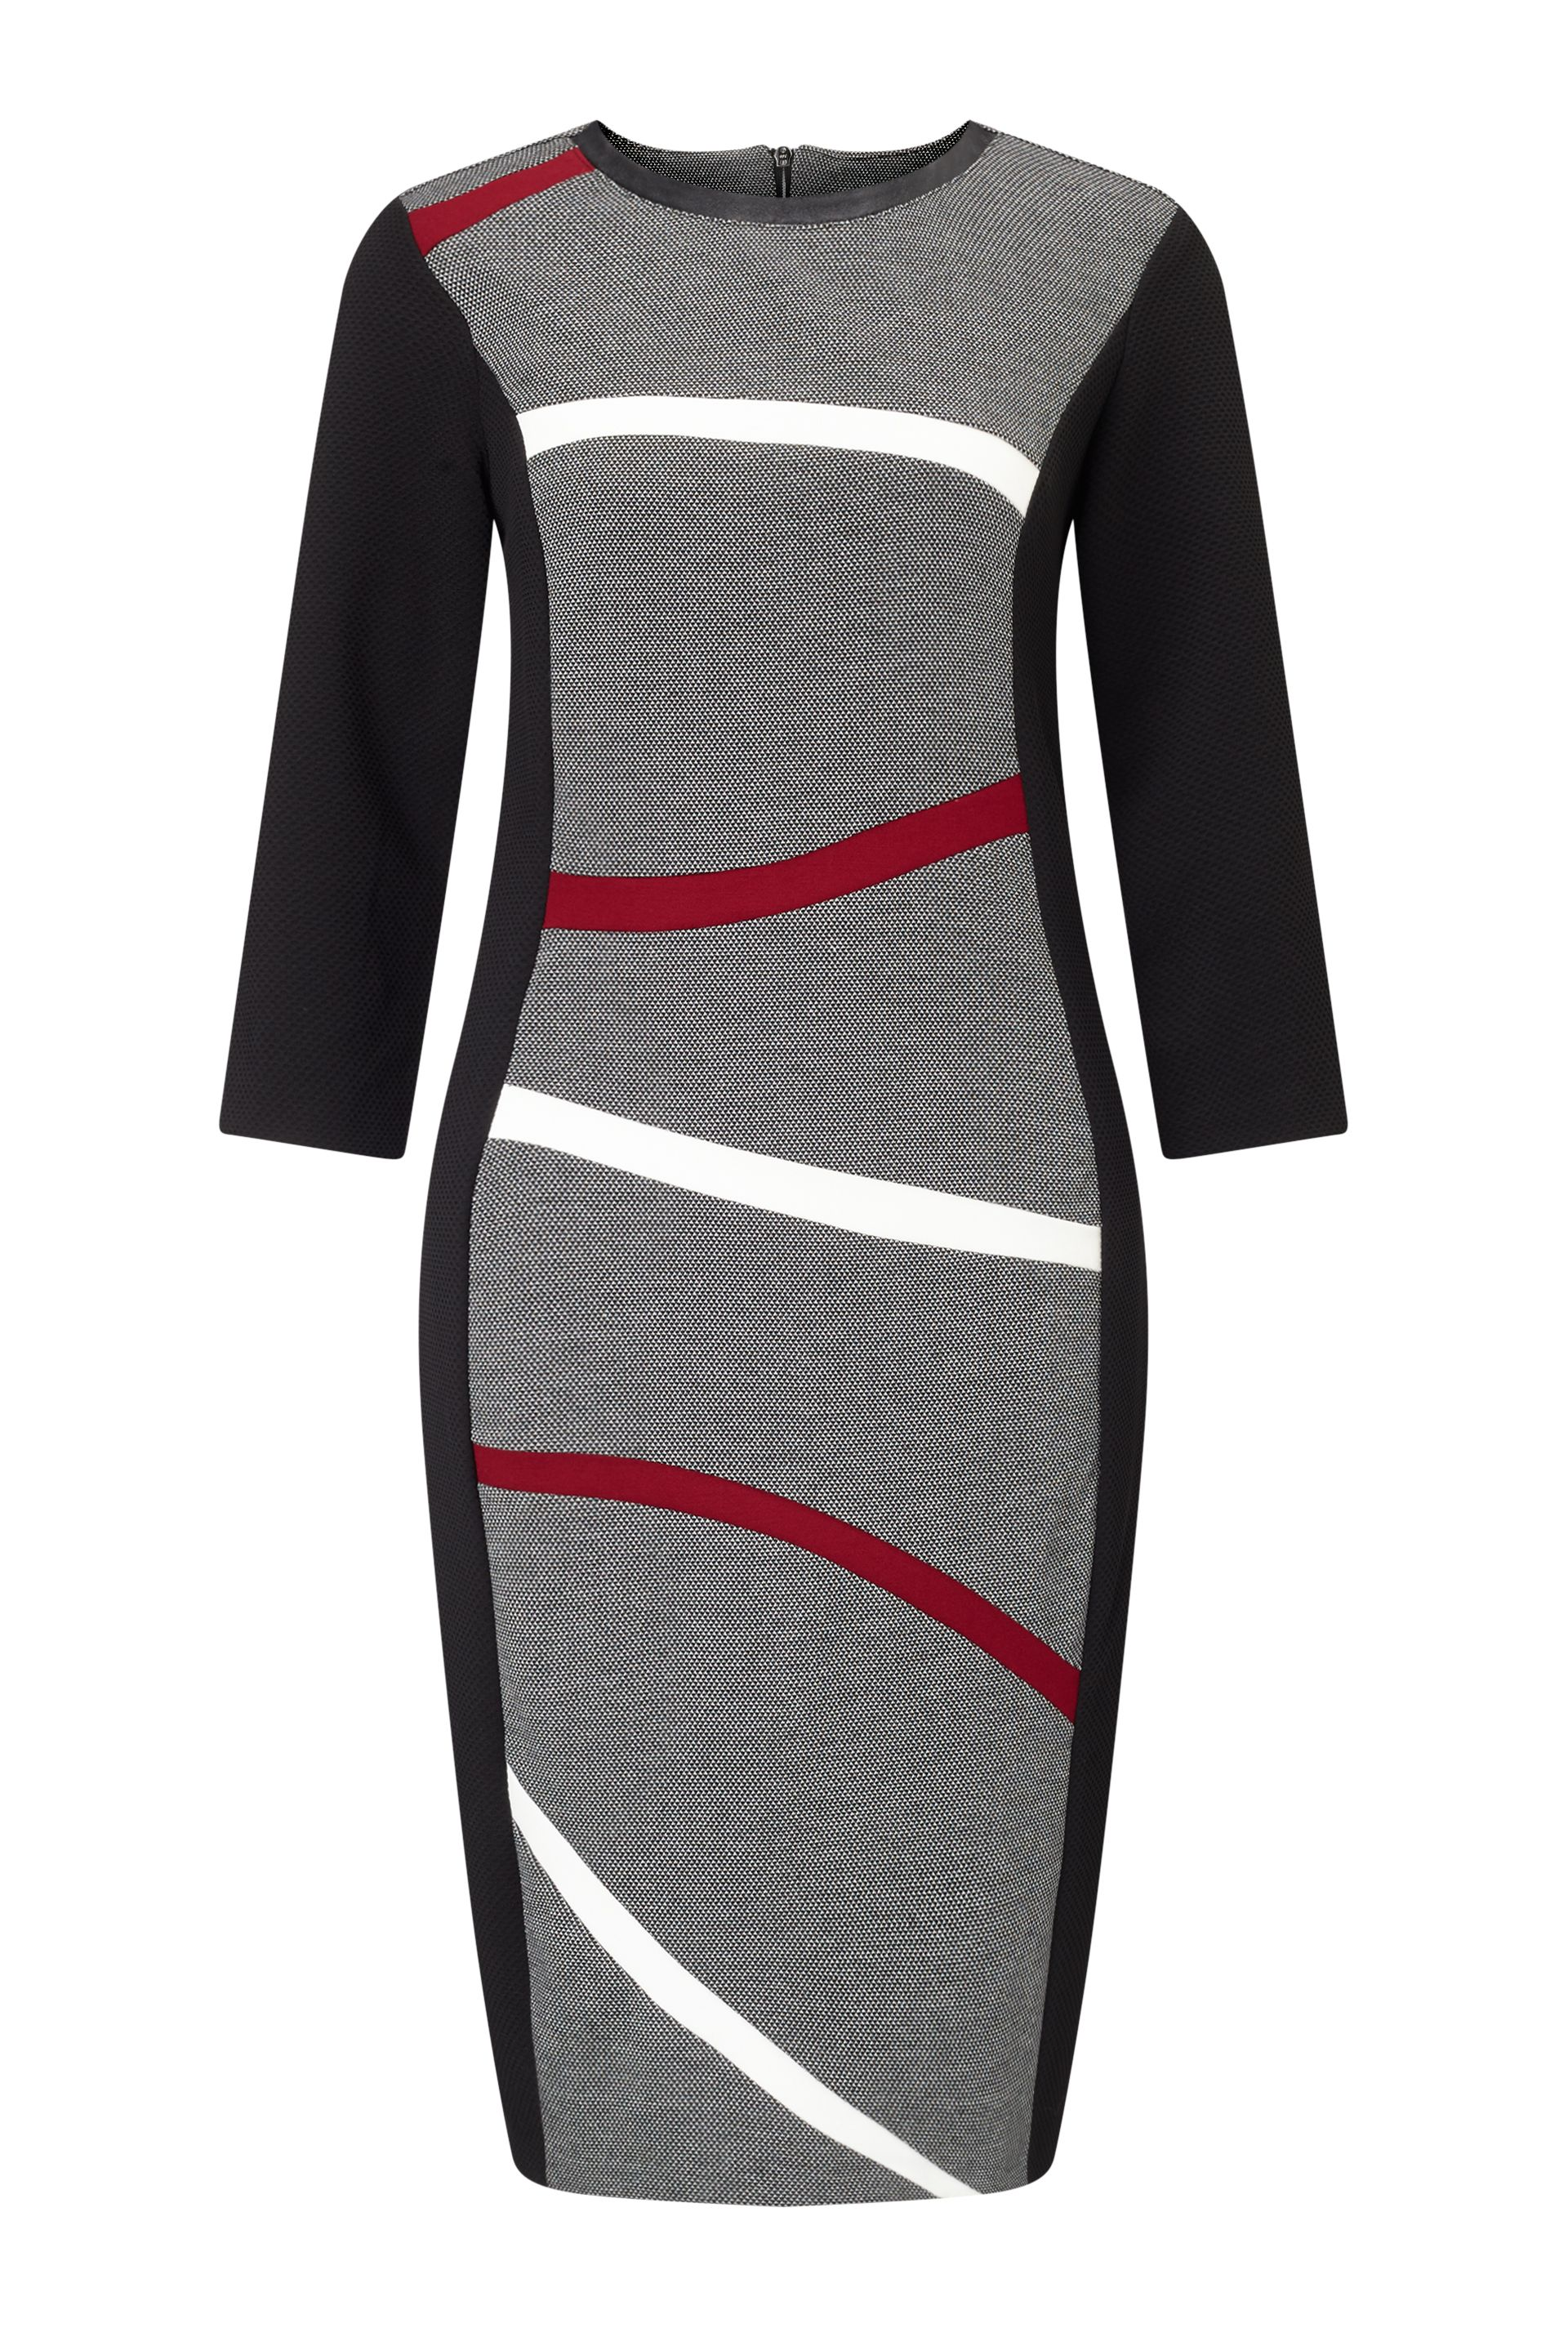 James Lakeland Wavey Stripe Dress, Black